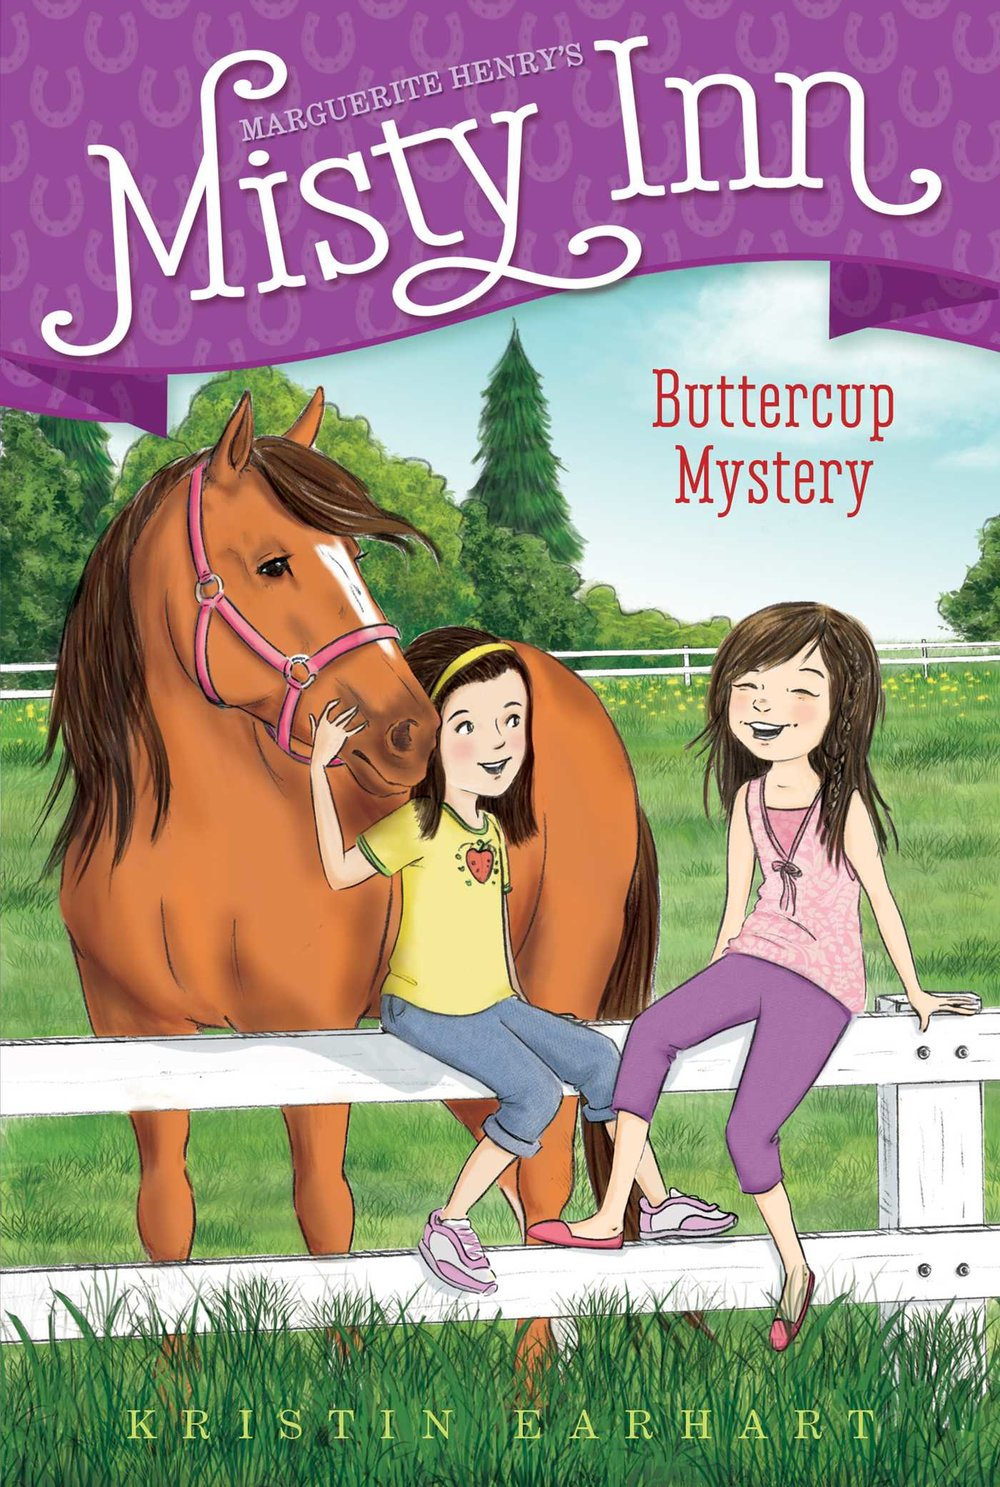 Buttercup Mystery - The Dunlap siblings must solve the mystery of a sick pony on Chincoteague Island in this second book of a chapter book series inspired by Marguerite Henry's Misty of Chincoteague.There's a sick horse at Misty Inn! Something Buttercup is eating—or being fed—is making her ill. Can Willa and Ben solve this pony problem and help Buttercup feel healthy again?